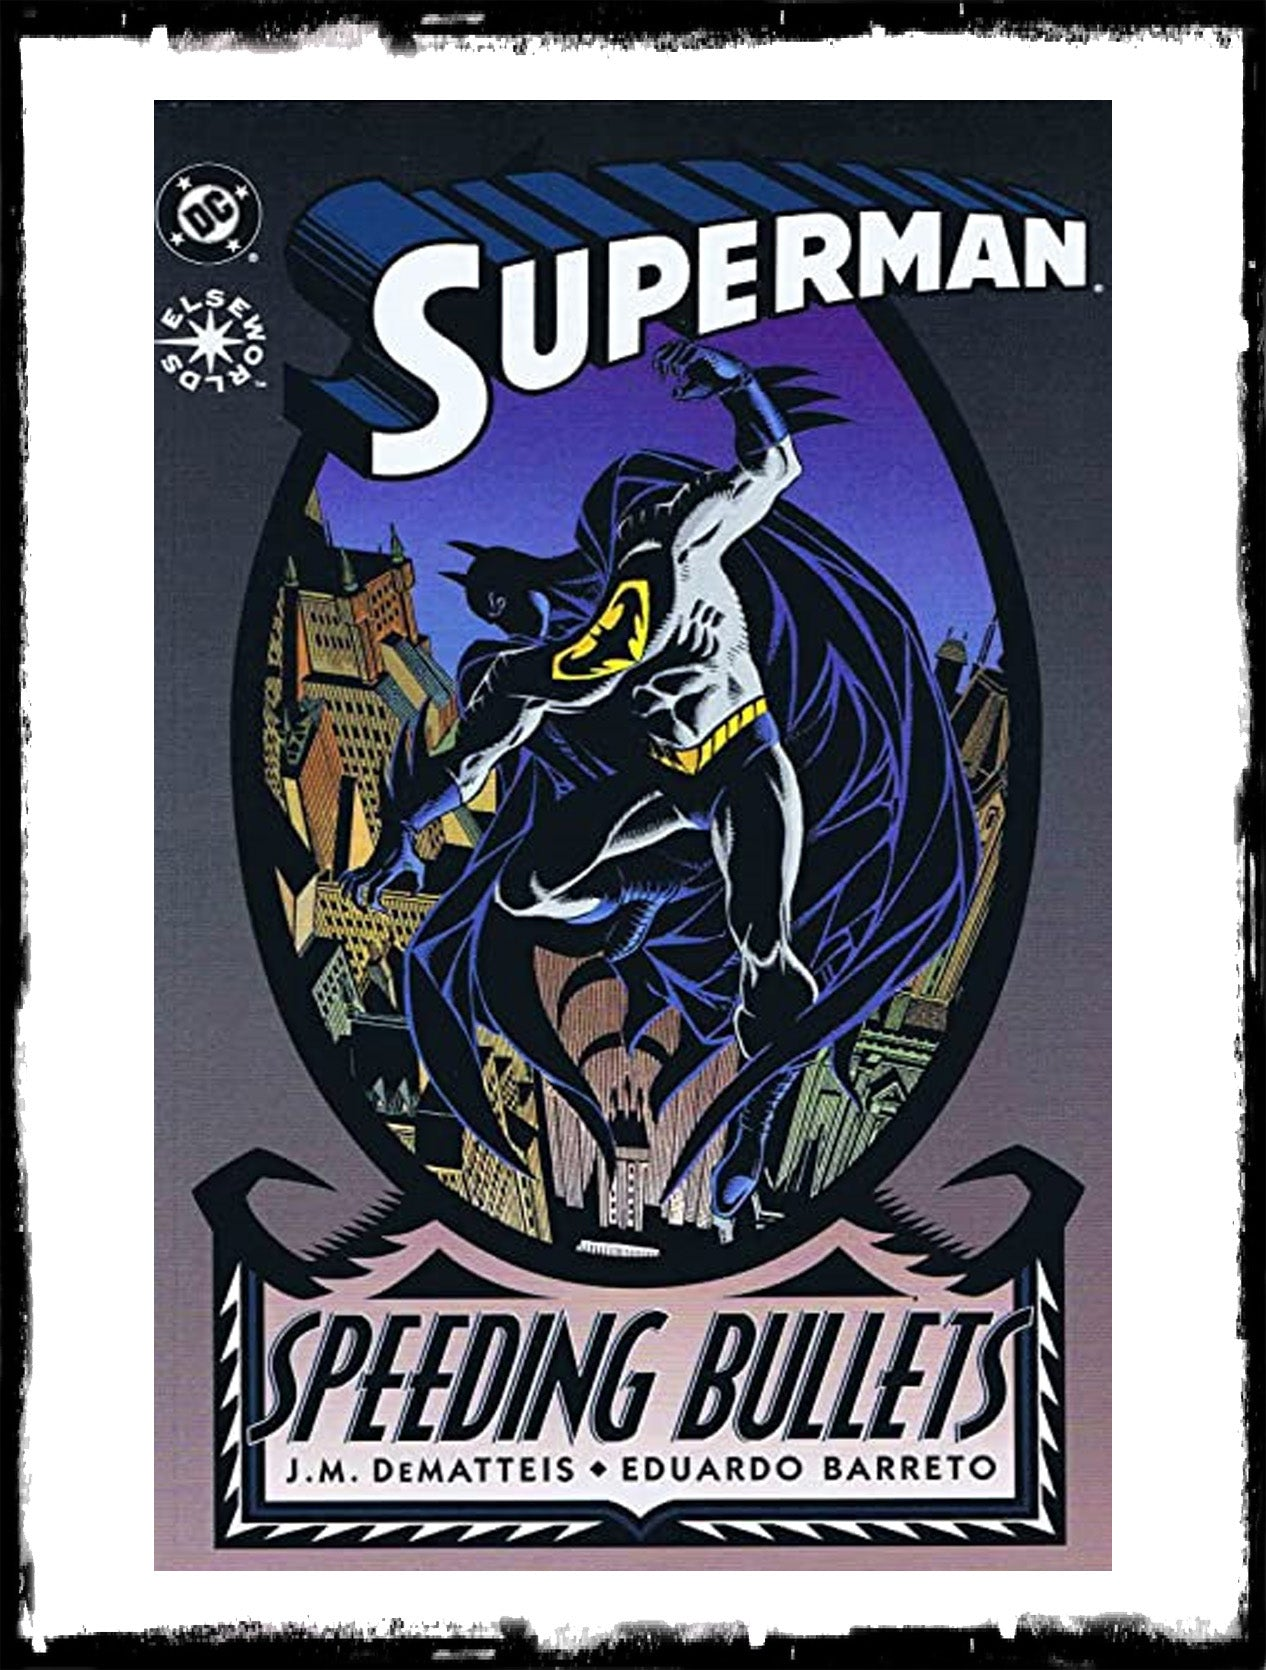 SUPERMAN: SPEEDING BULLETS - PRESTIGE FORMAT (1993 - NM)